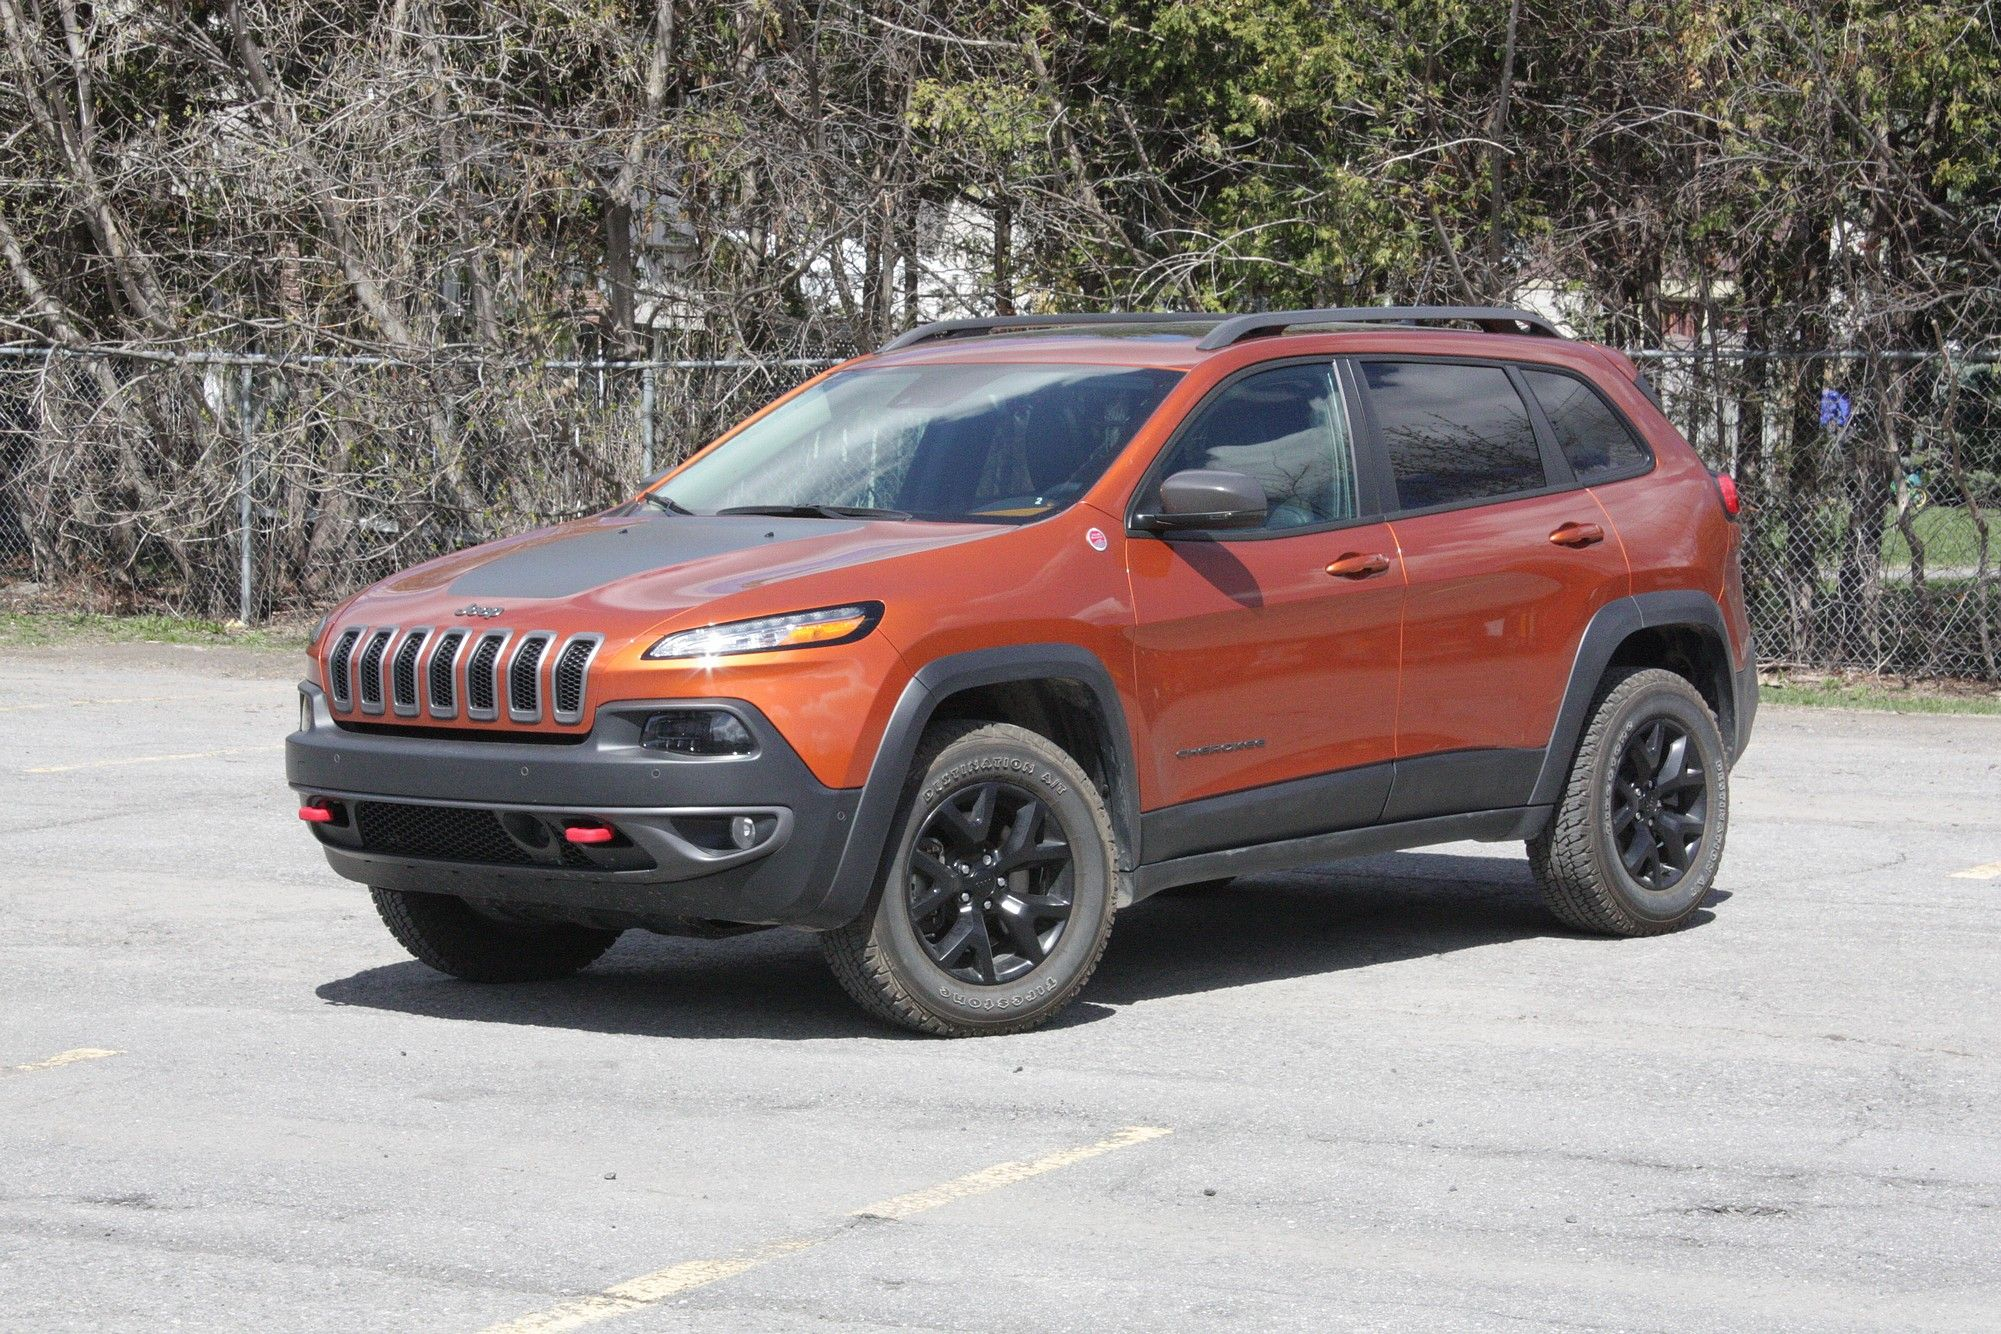 Drive 2015 Jeep Cherokee Trailhawk Review Jeep Cherokee Jeep Cherokee Trailhawk 2015 Jeep